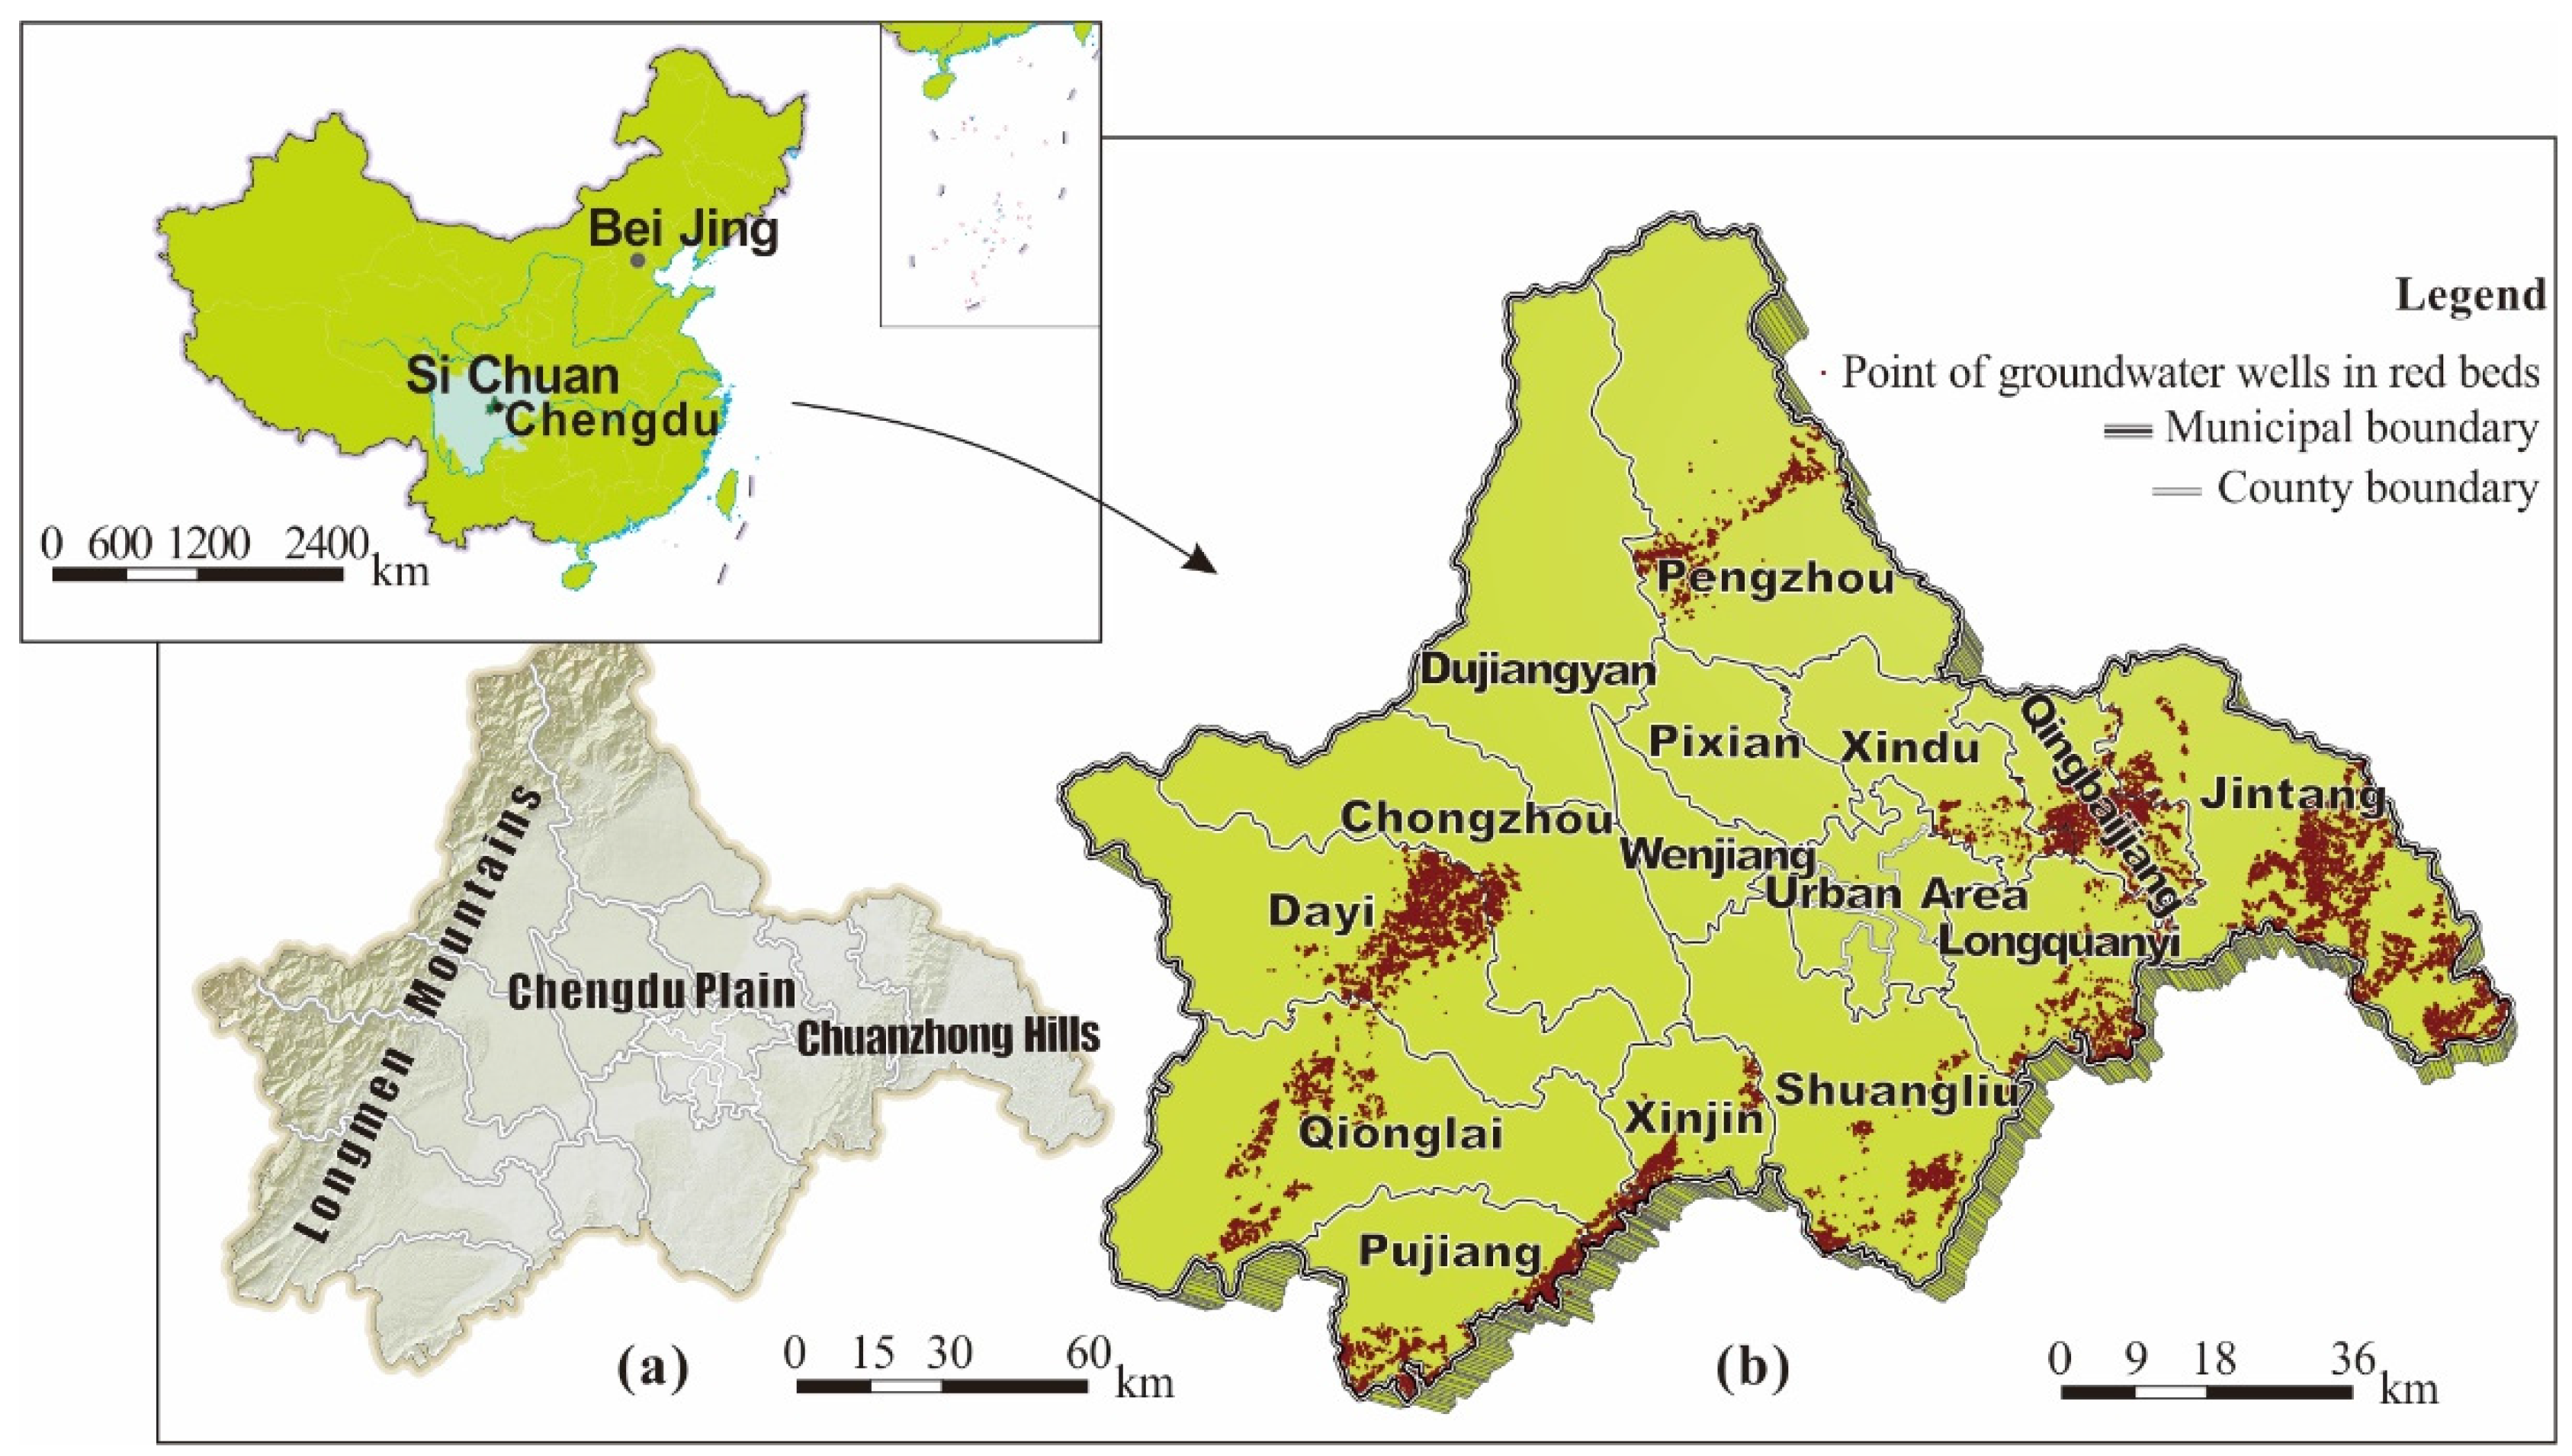 Evaluation and Clustering Maps of Groundwater Wells in the Red Beds of Chengdu, Sichuan, China